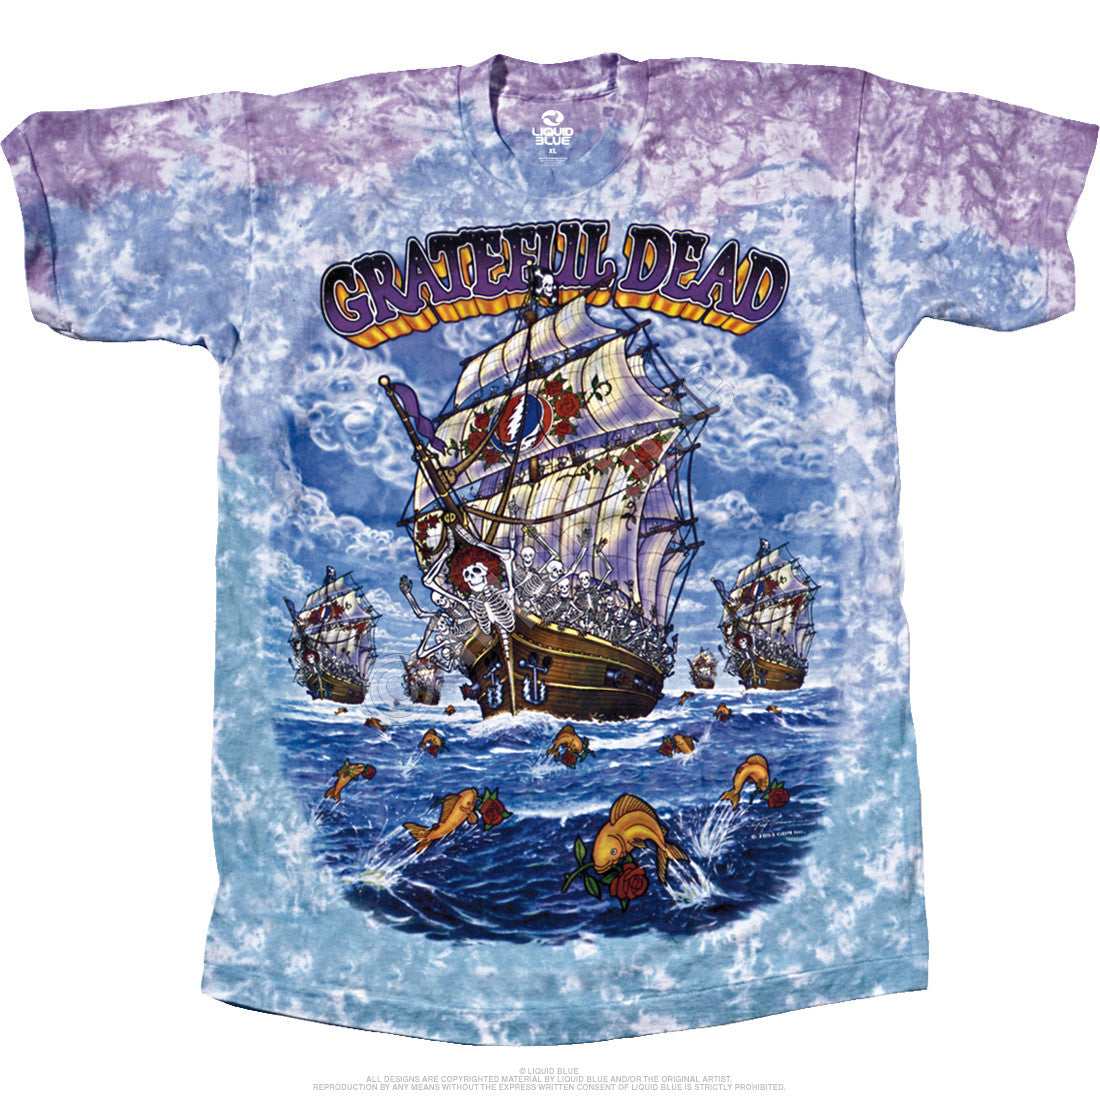 0ace1e197b6 Grateful Dead Ship Of Fools Tie Dye T Shirt